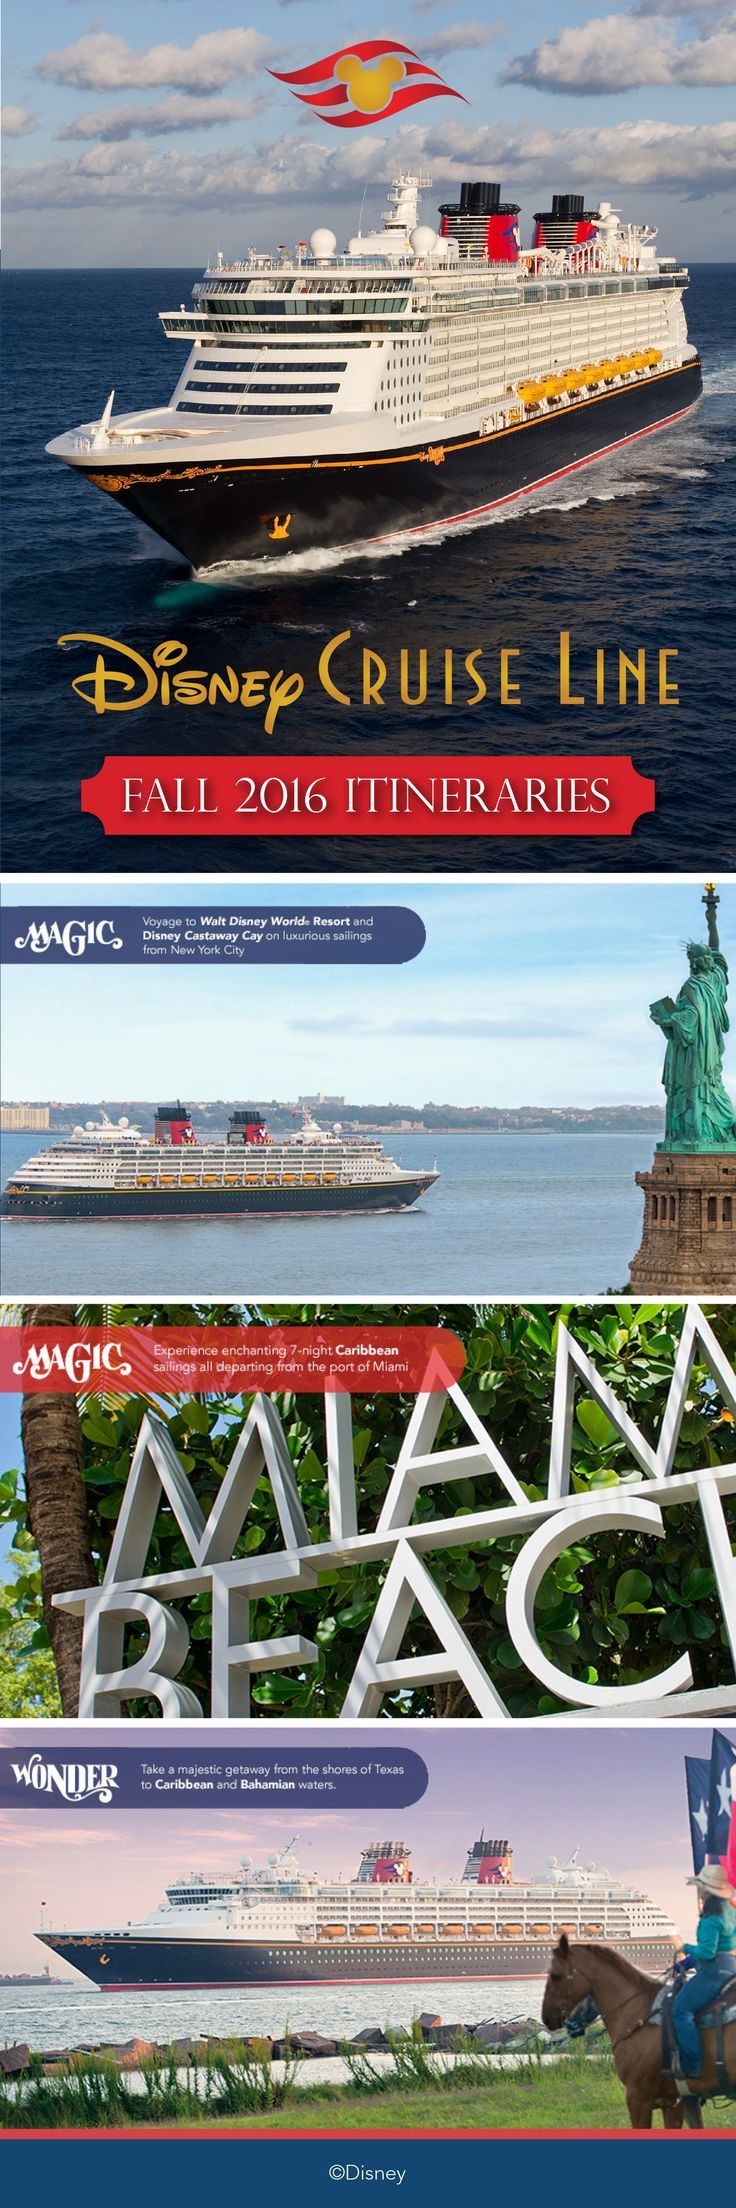 In the fall of 2016 disney cruise line will return to new york for a